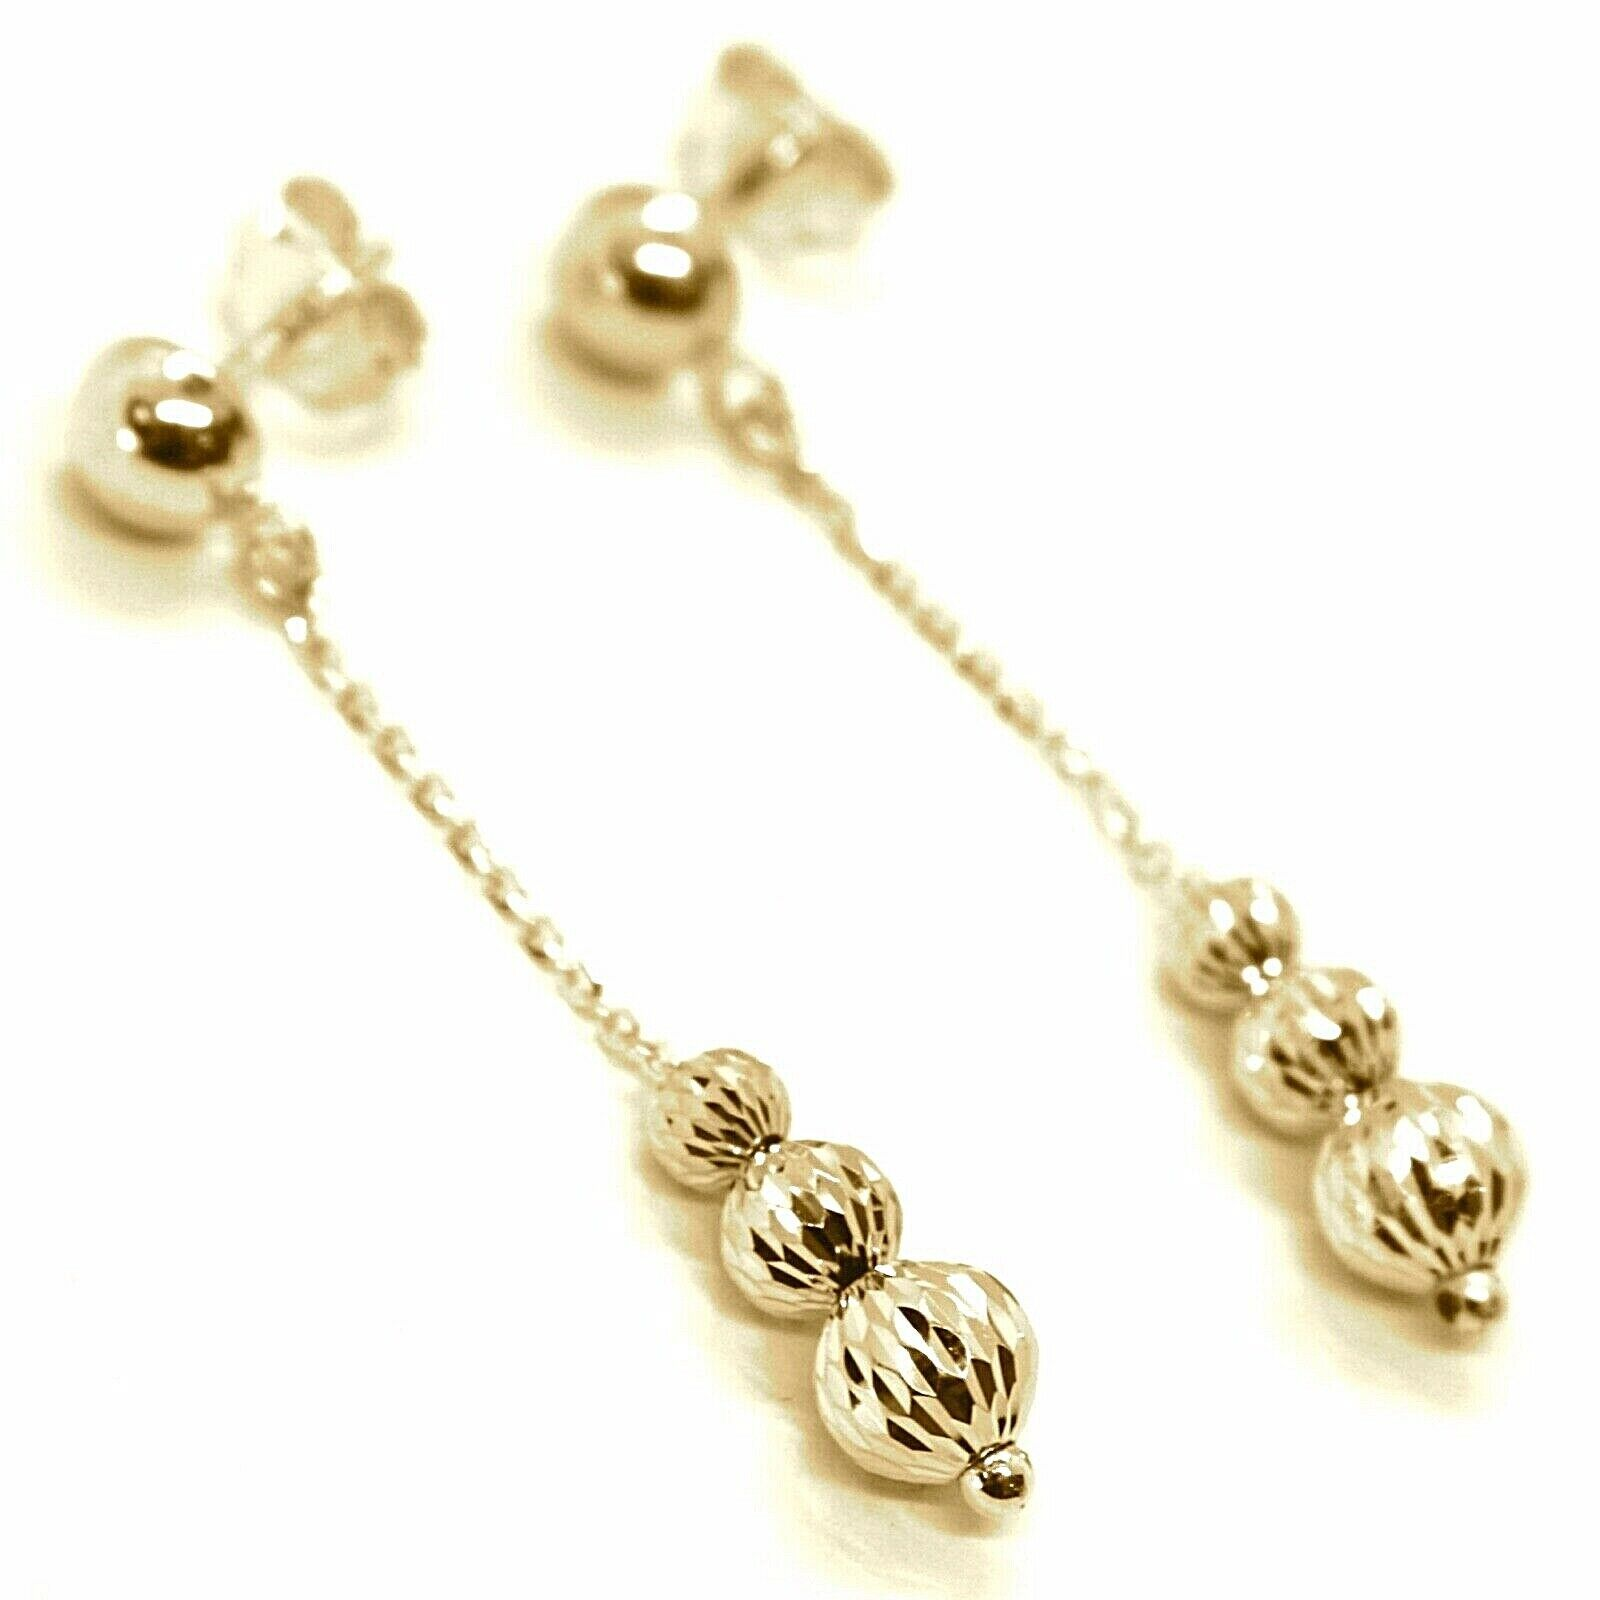 18K YELLOW GOLD PENDANT EARRINGS THREE FACETED WORKED BALLS SPHERES